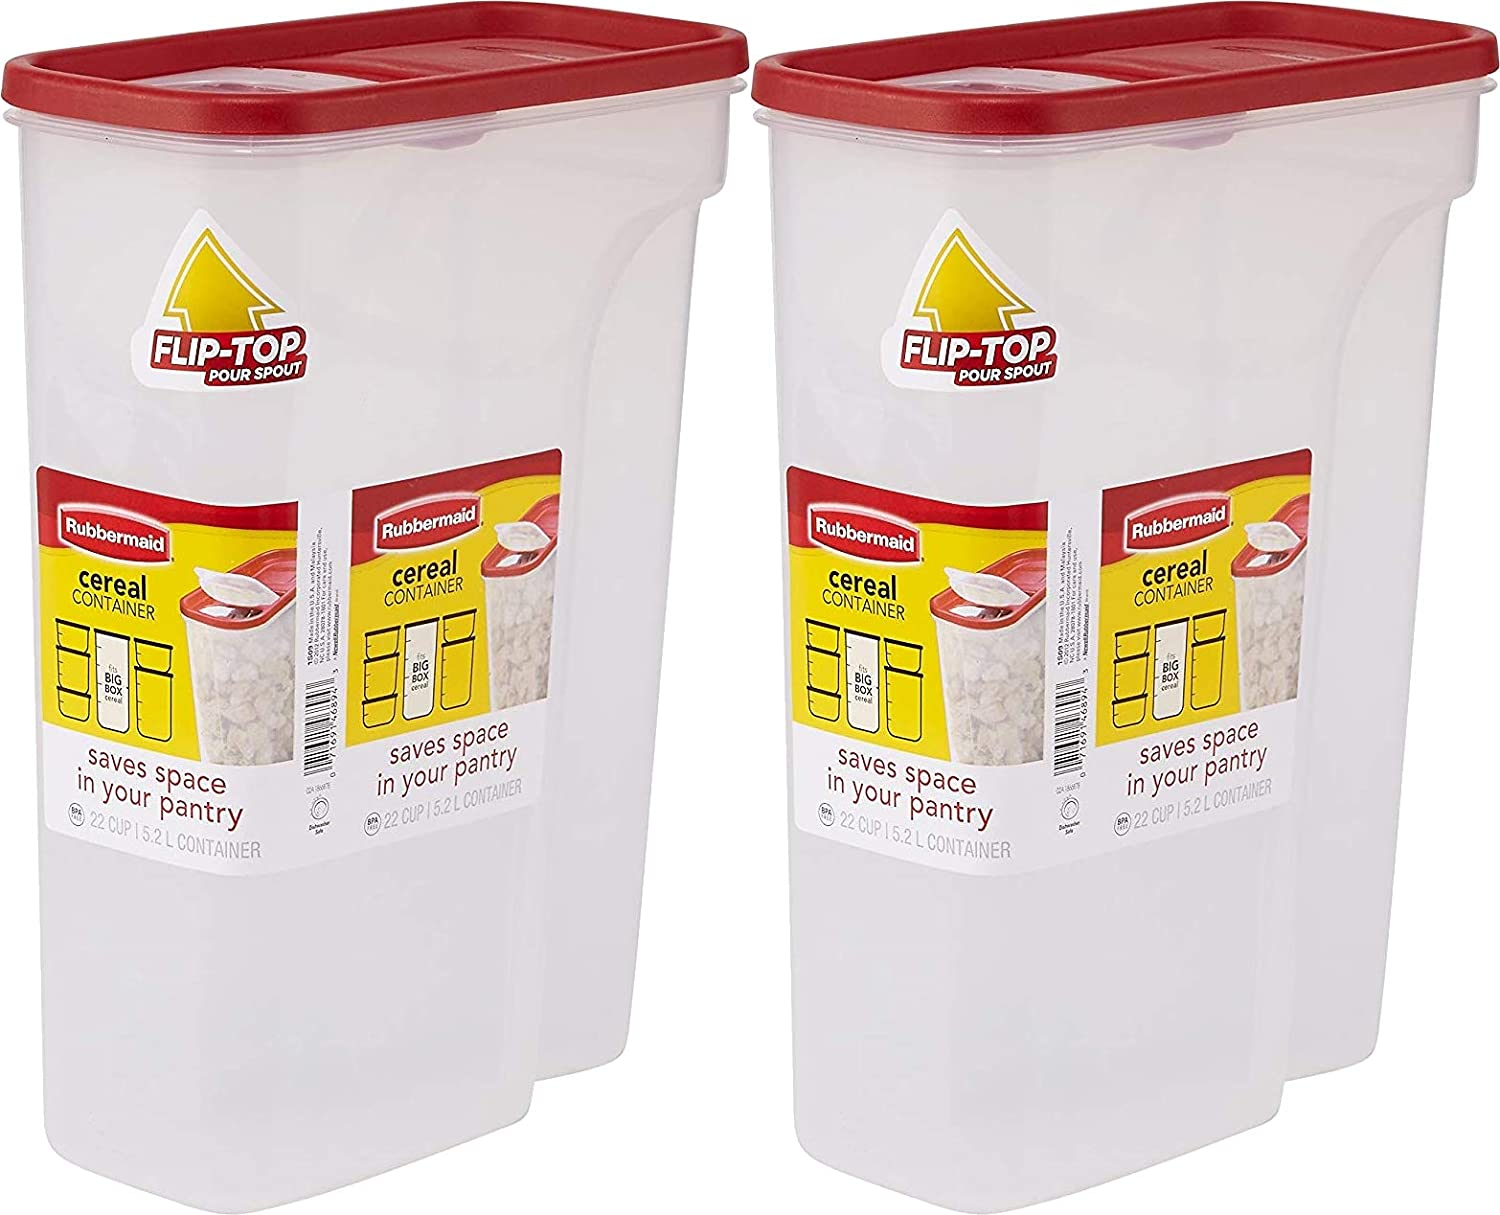 Rubbermaid Flip Top Cereal Keeper, Modular Food Storage Container, BPA-free, 22 Cup, 2 Pack